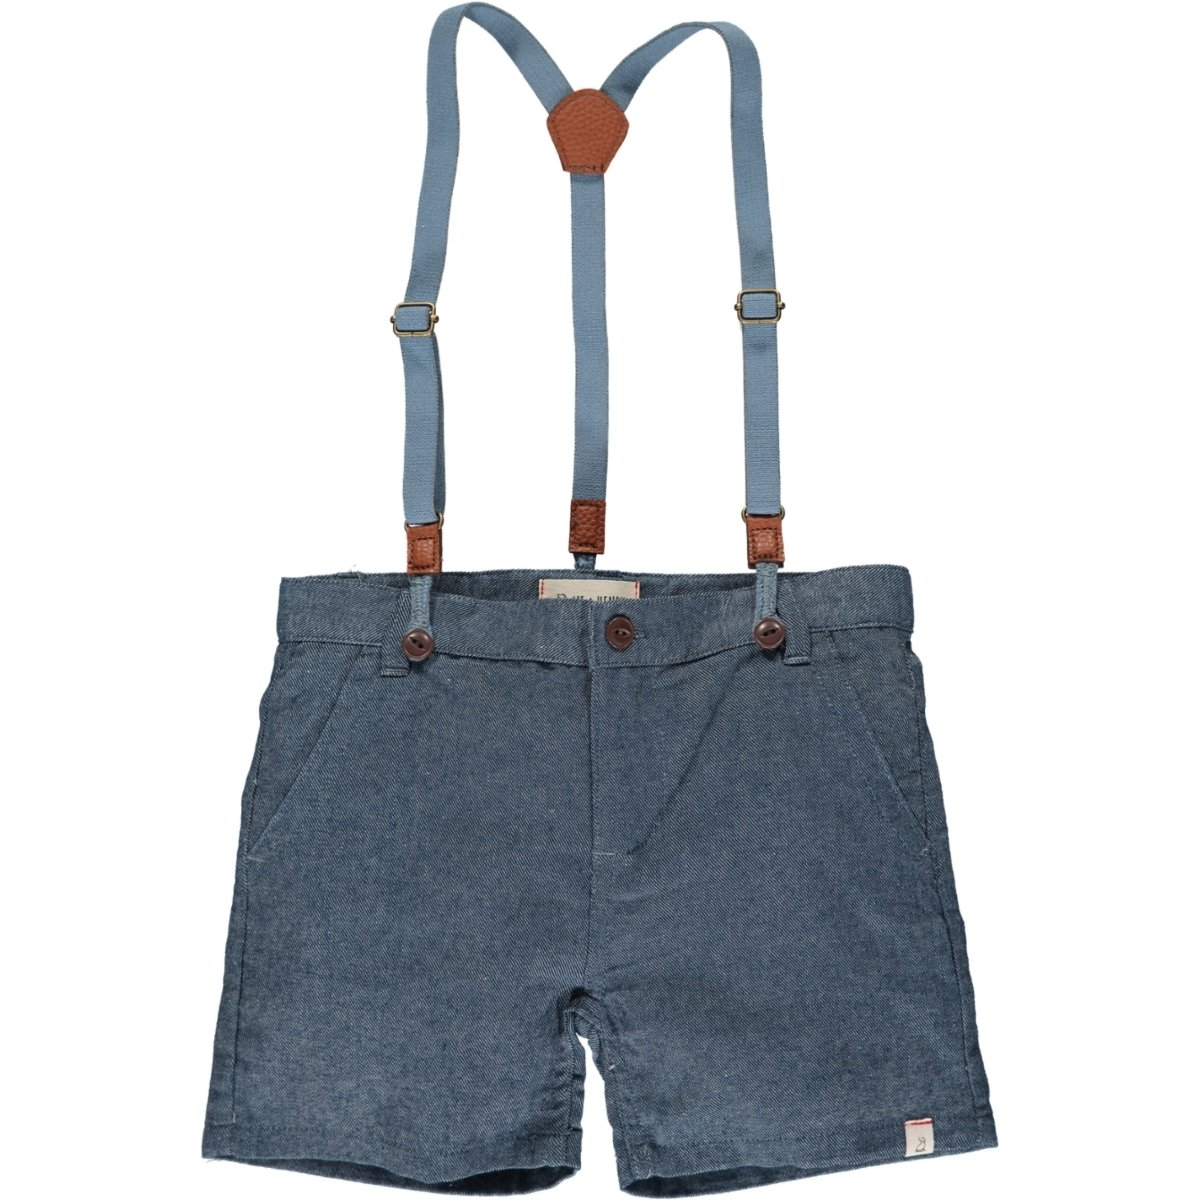 Captain Shorts with Suspenders in Chambray by Me + Henry